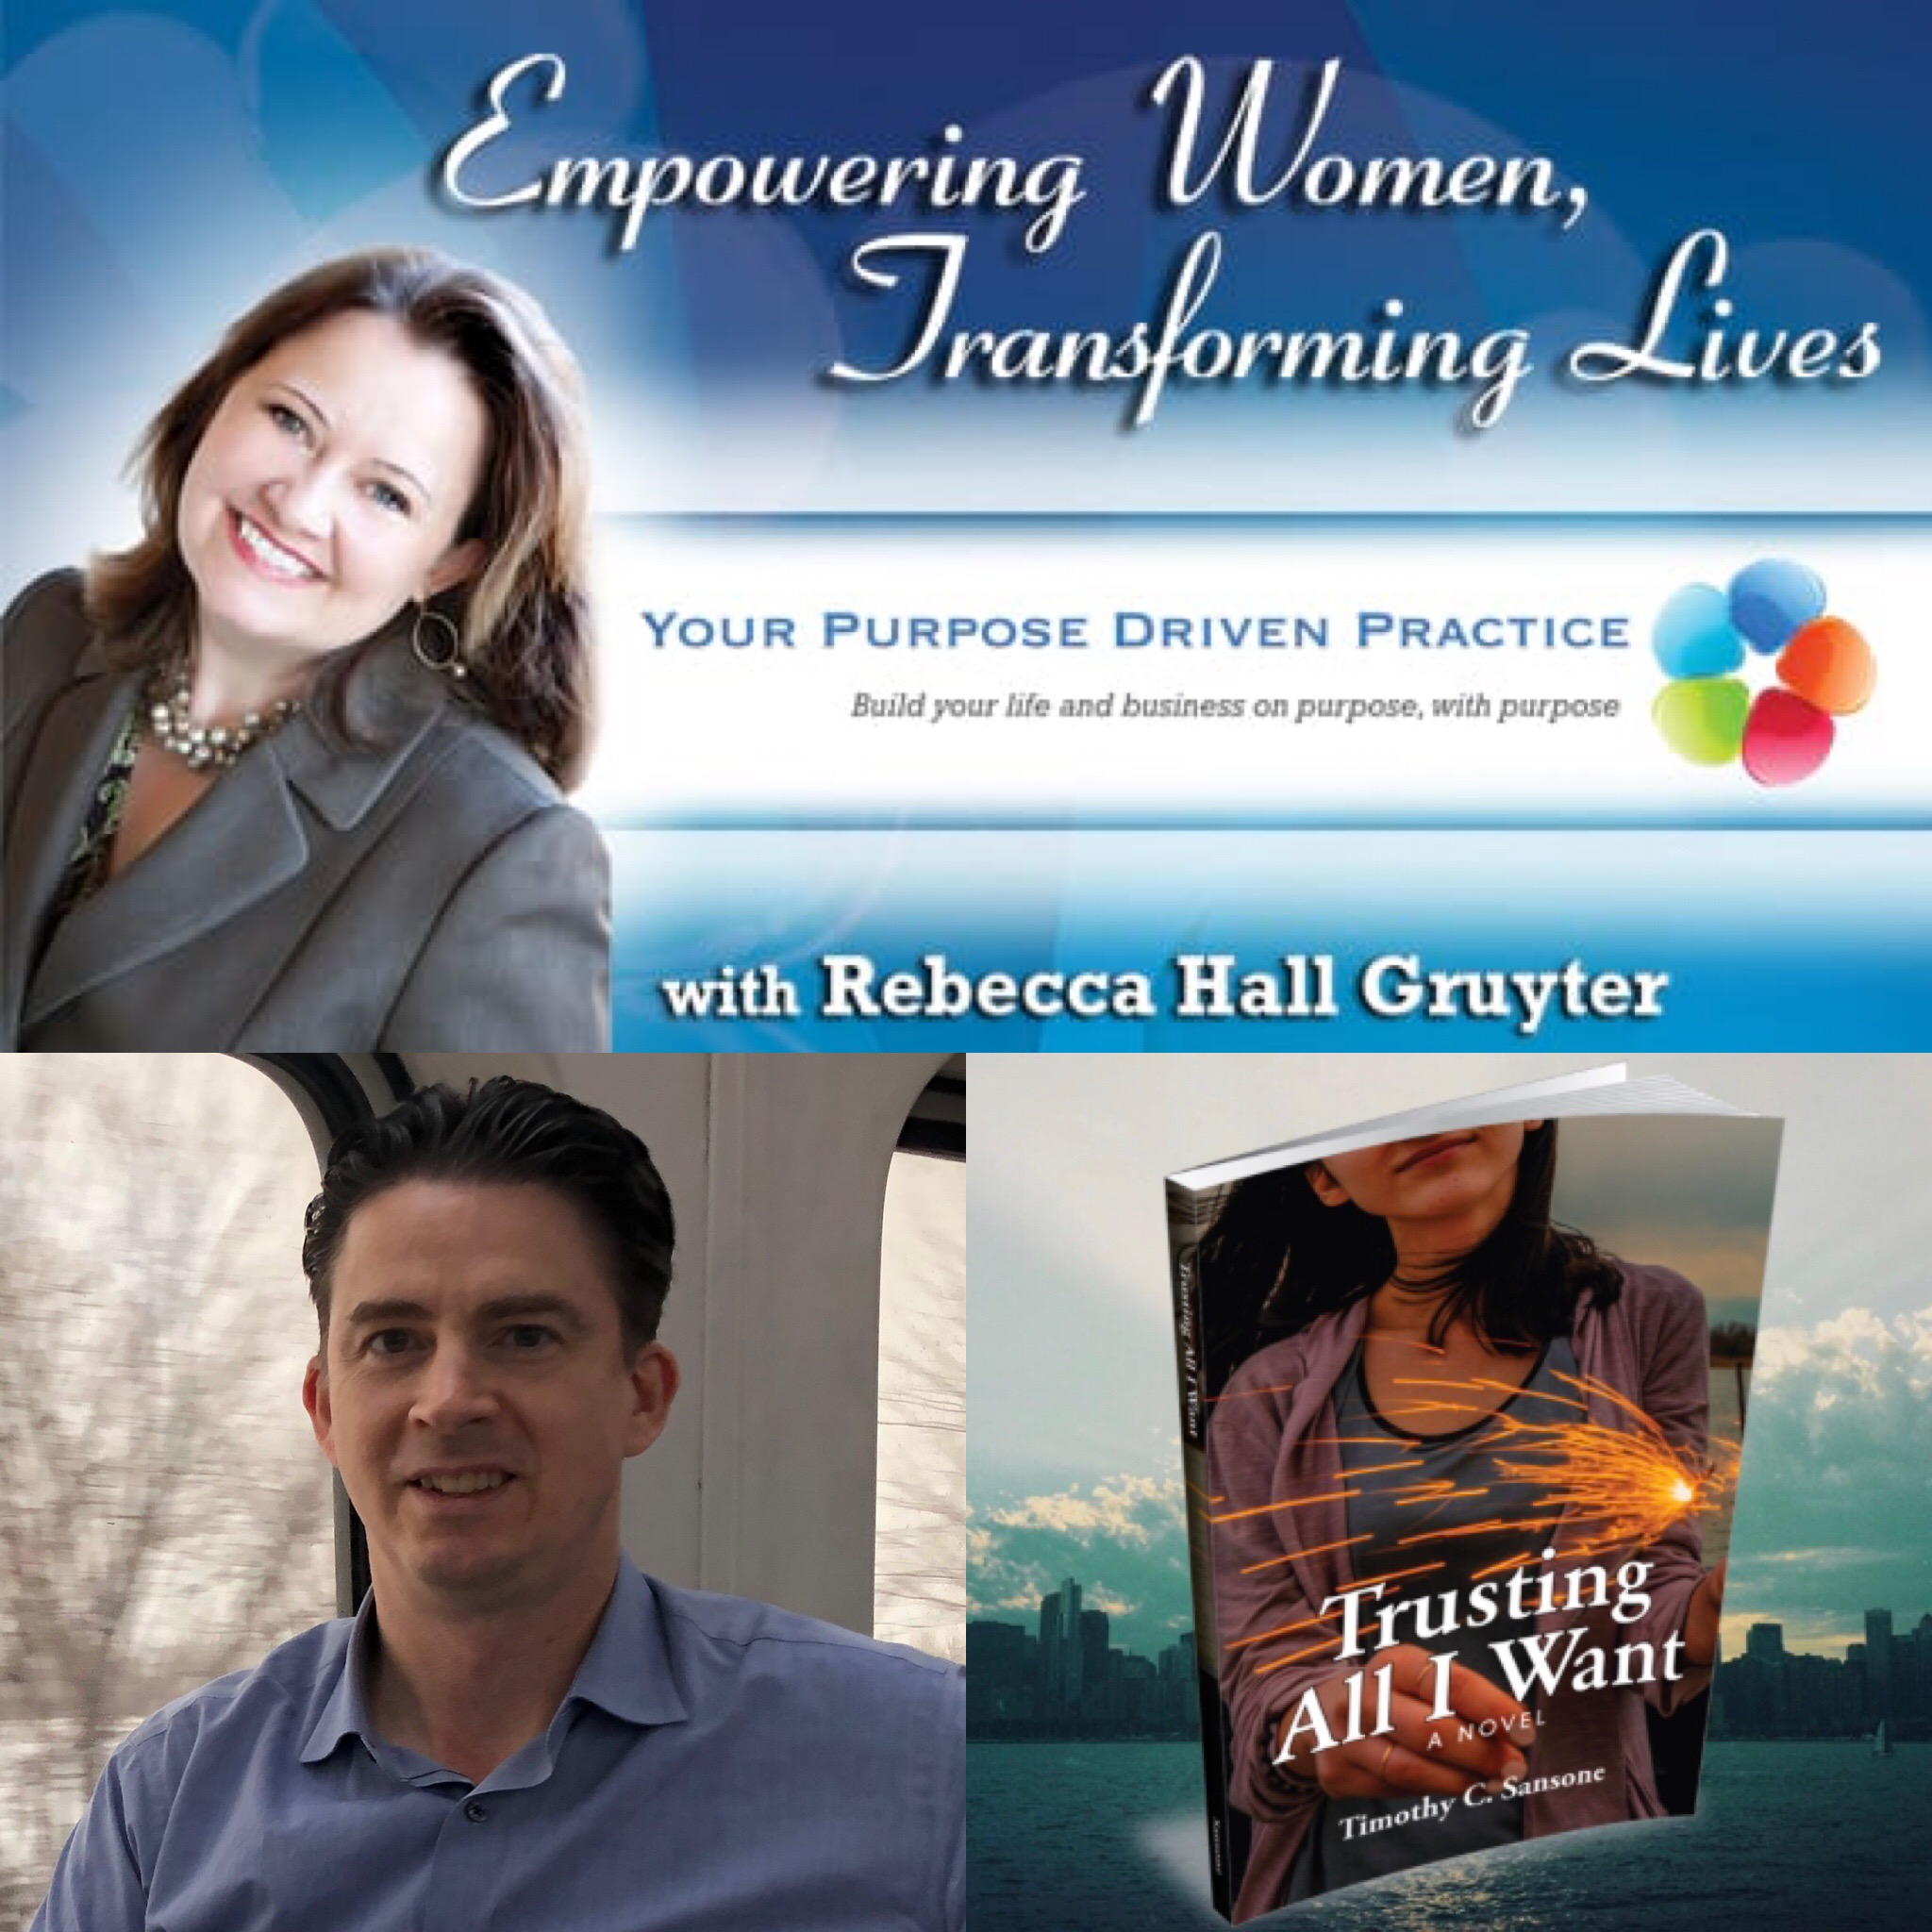 """Interview Of Timothy C. Sansone By Rebecca Hall Gruyter, Host Of """"Empowering Women, Transforming Lives"""""""